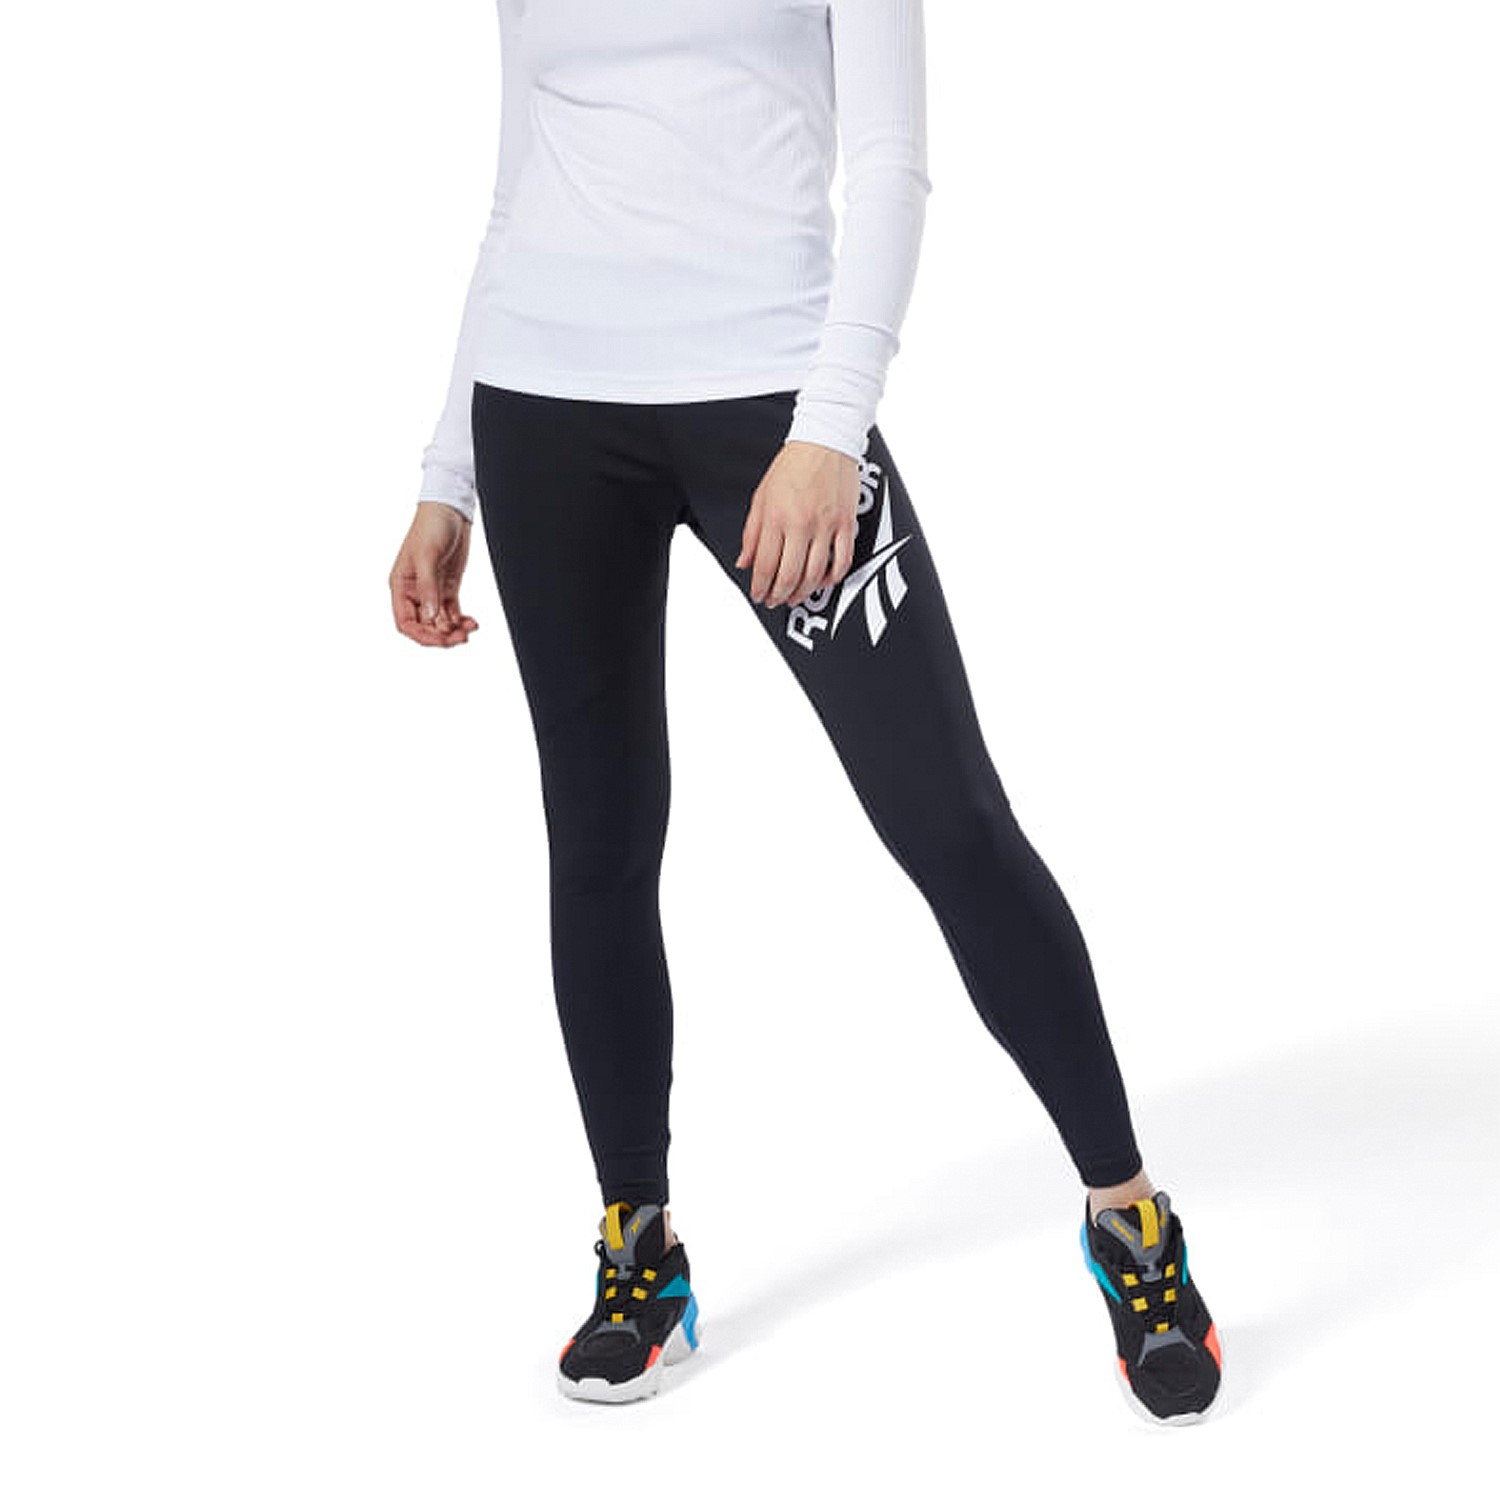 b82e7ff00dced New Arrivals | Men's, Women's and Kid's New Arrivals Online | Stirling  Sports - Classic Vector Legging